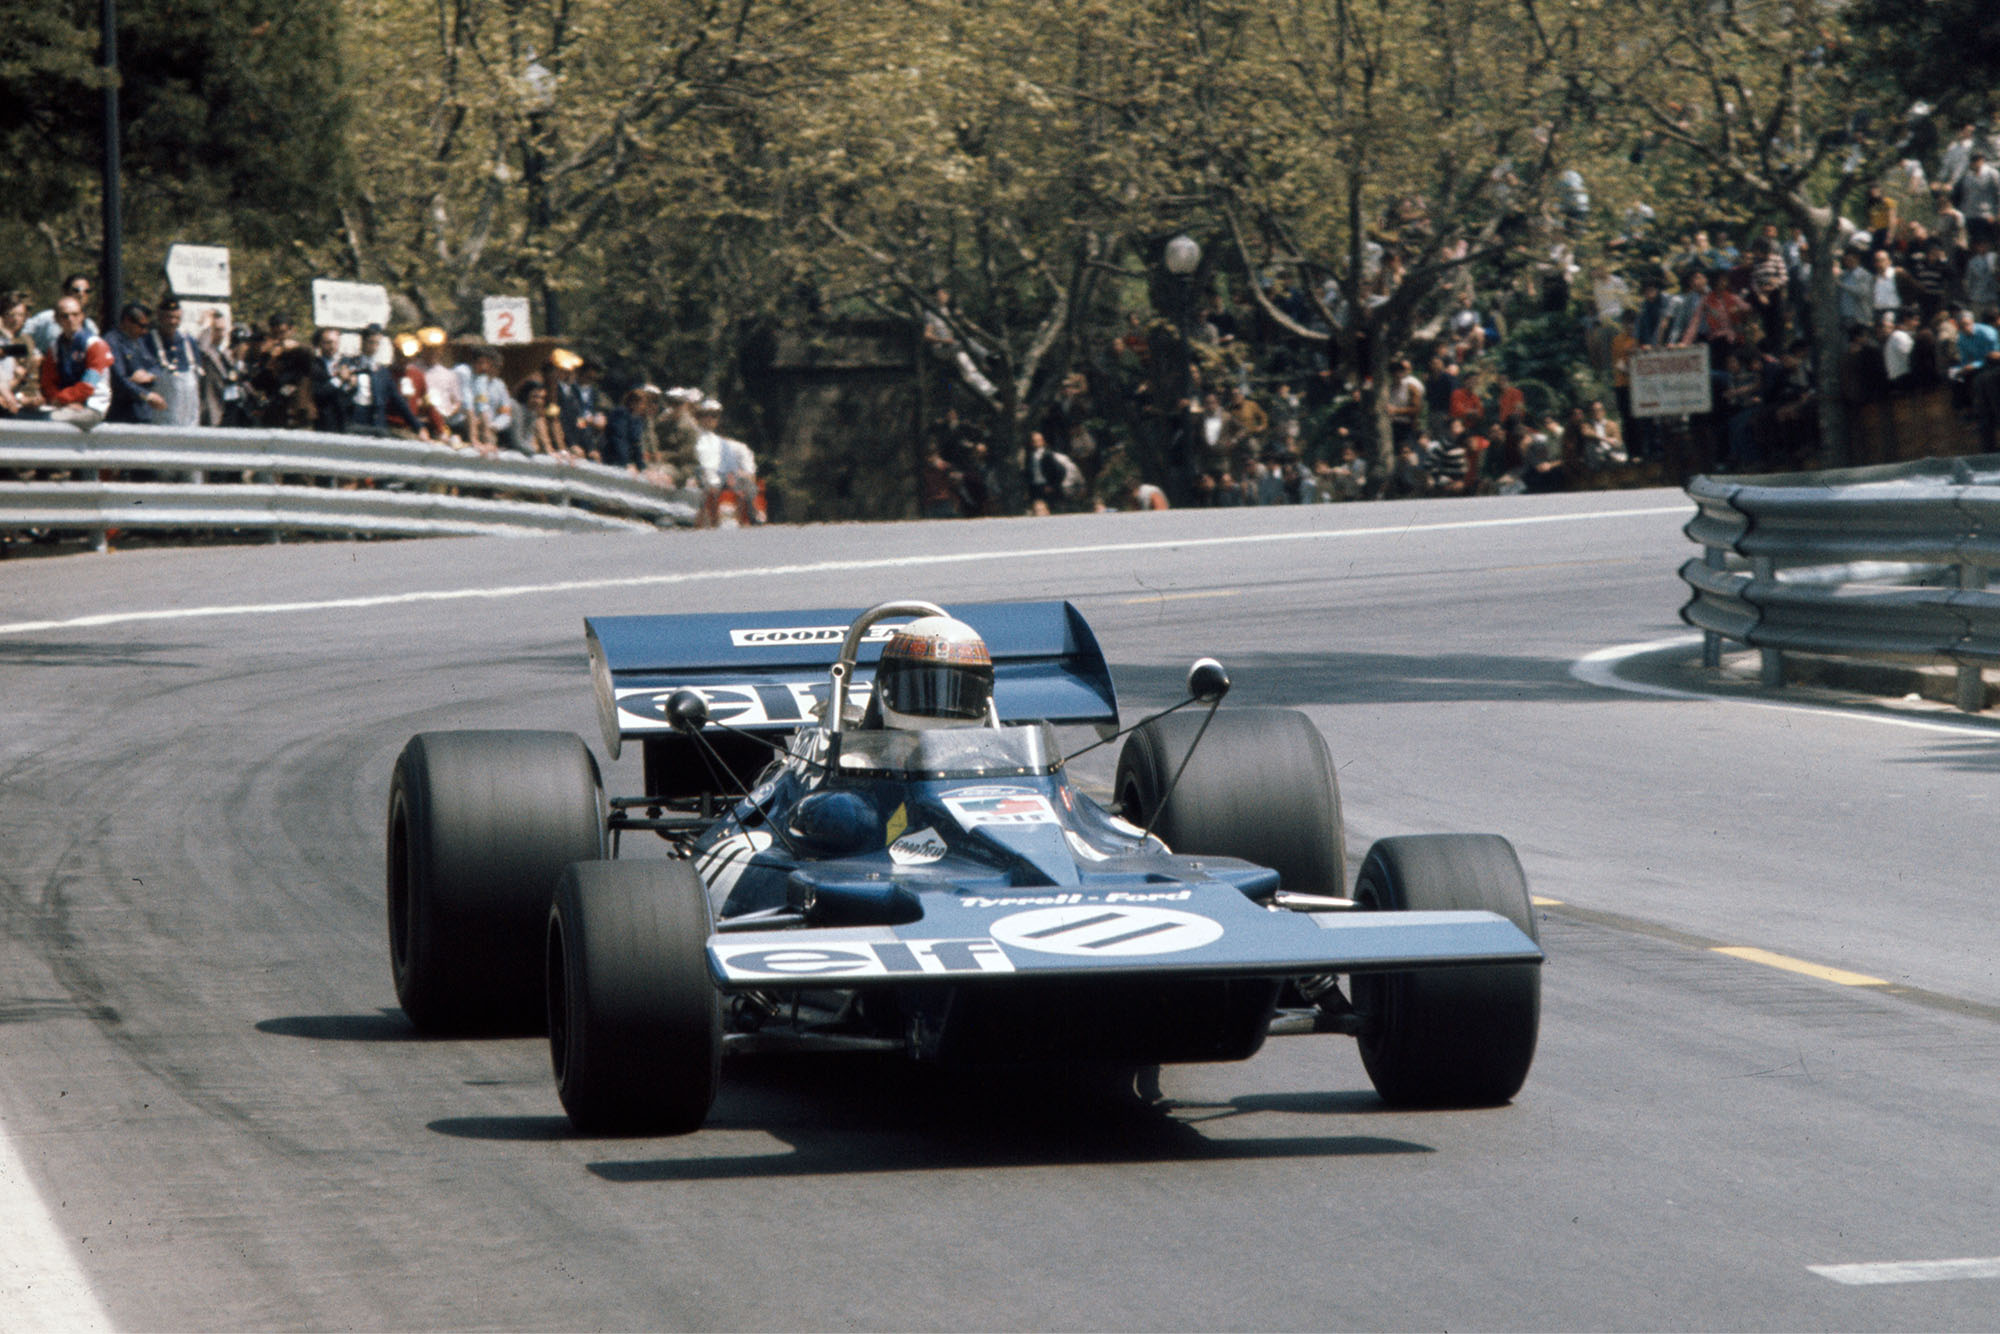 Jackie Stewart driving his Tyrrell at the 1971 Spanish Grand Prix